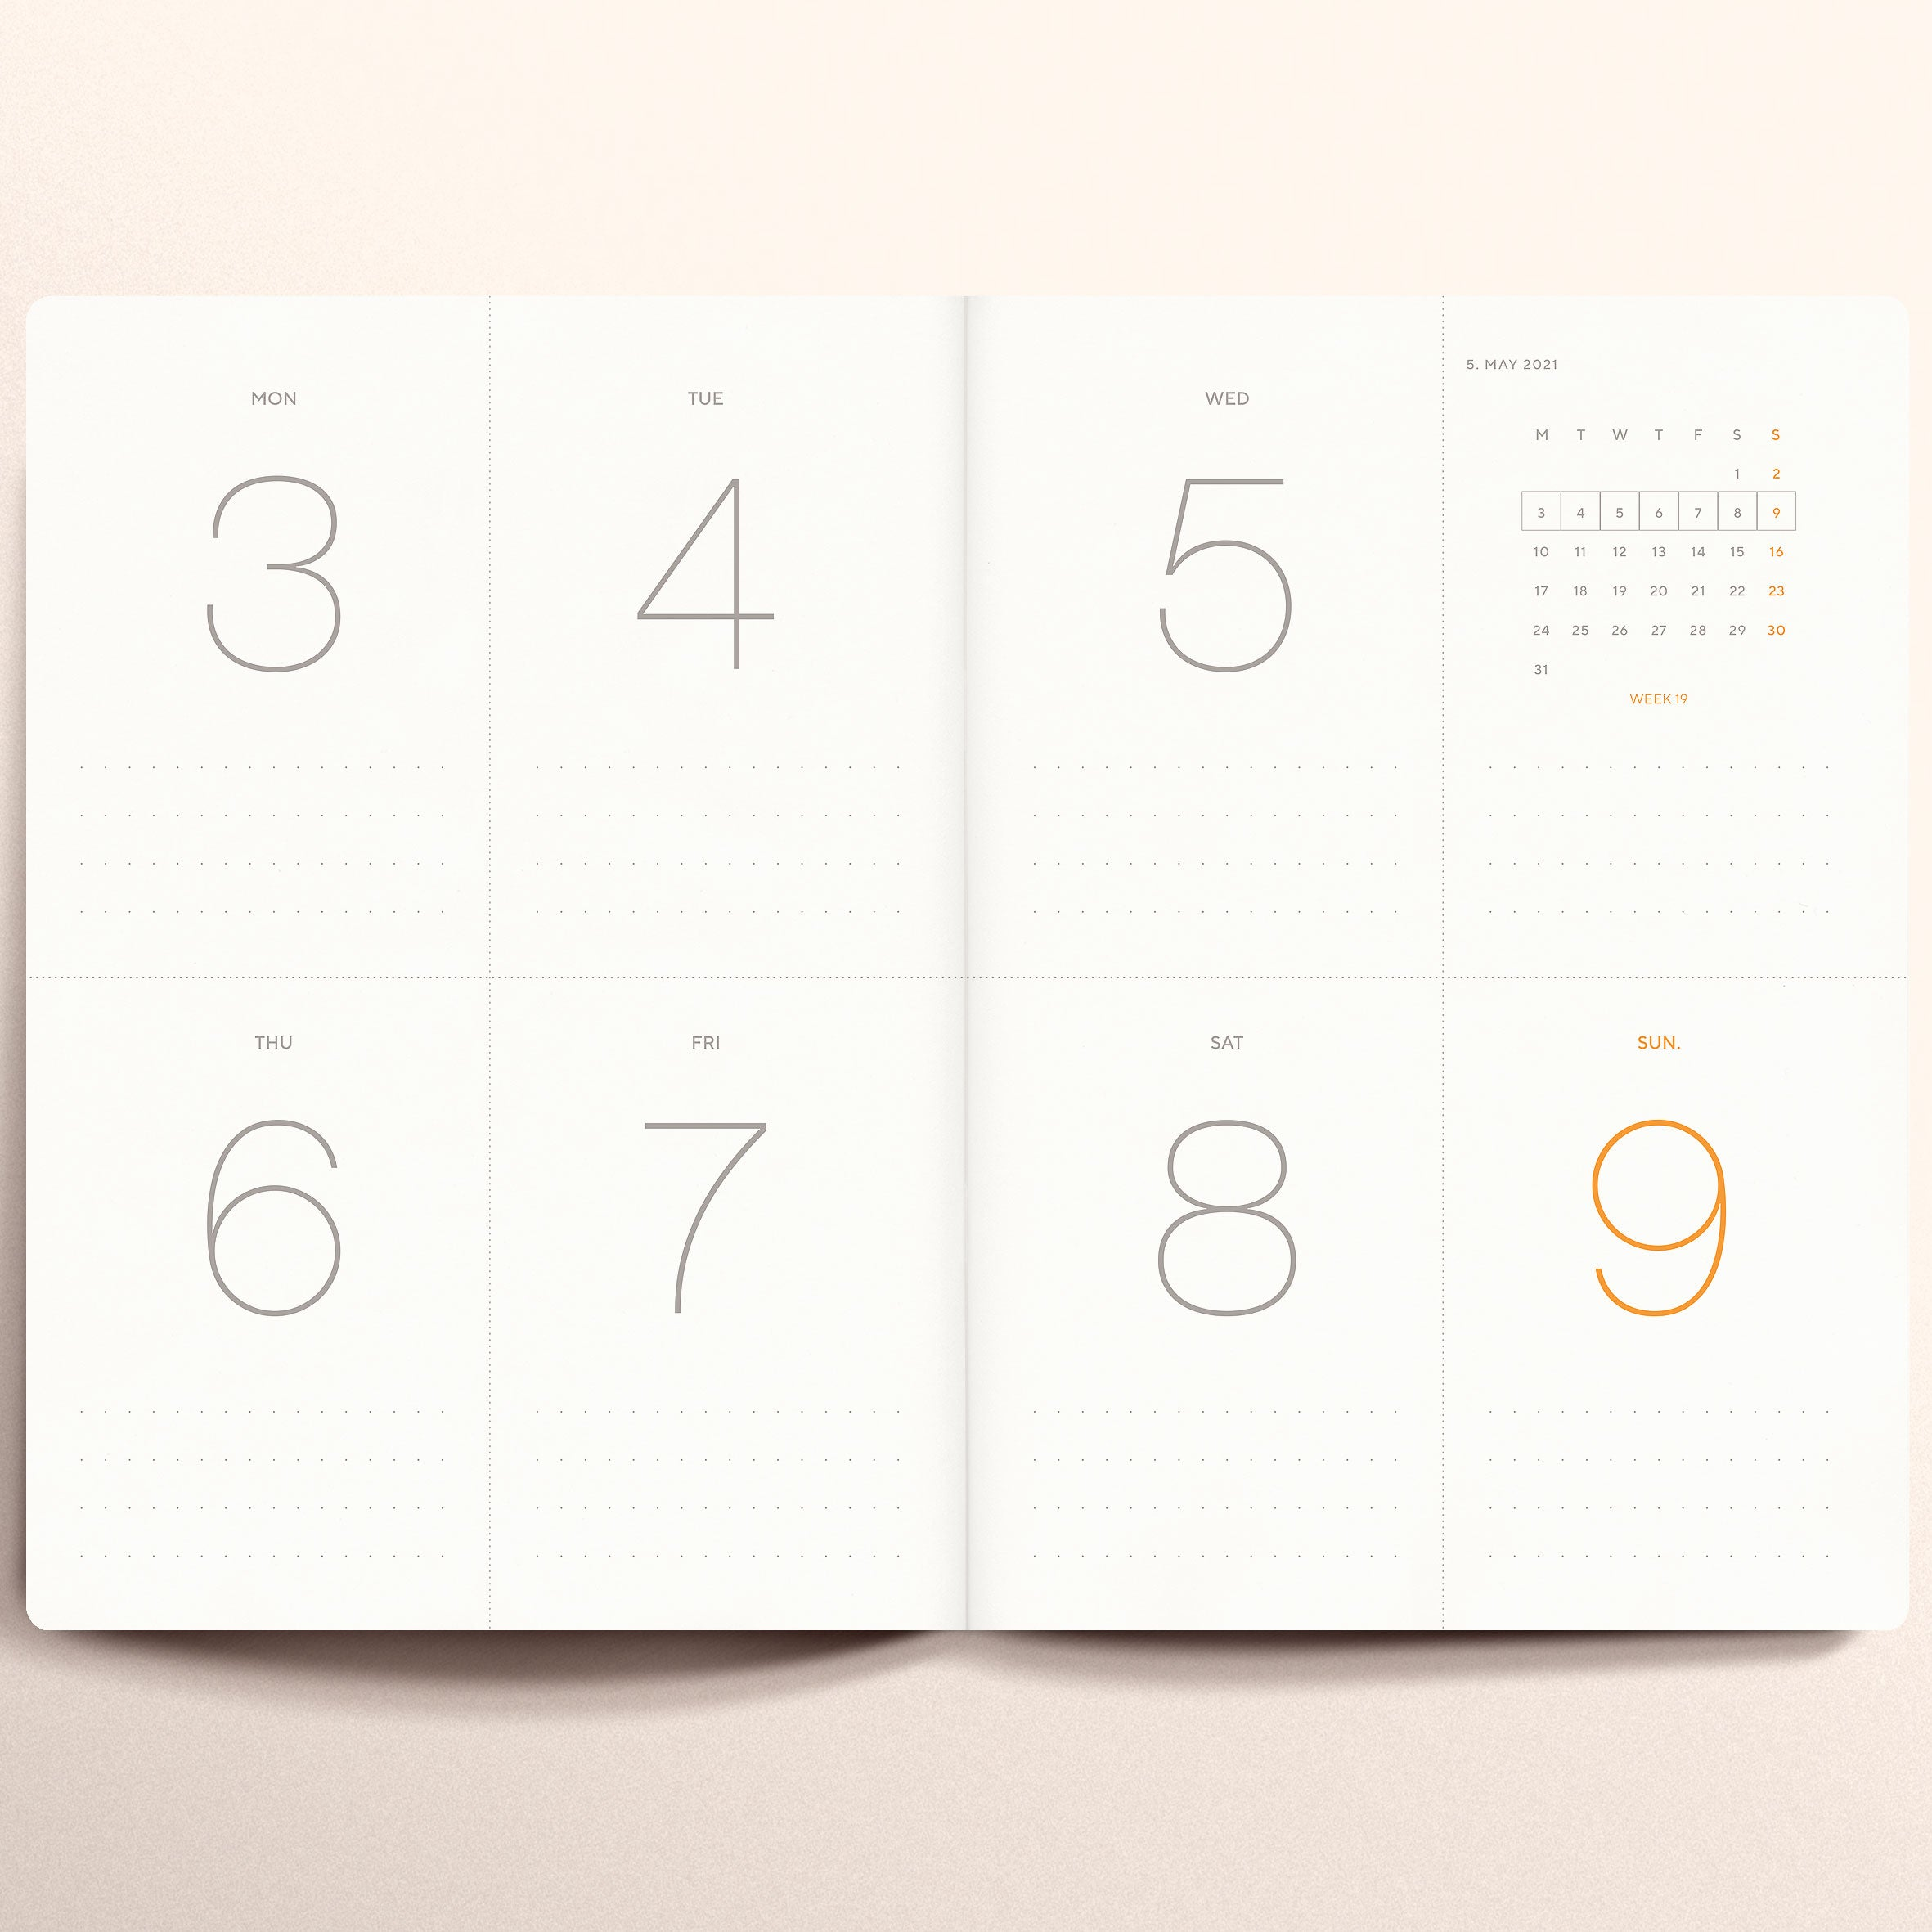 """Untitled 05"" by Anna Chask. 2021 Weekly planner A5 Size. 100% Cotton Paper"